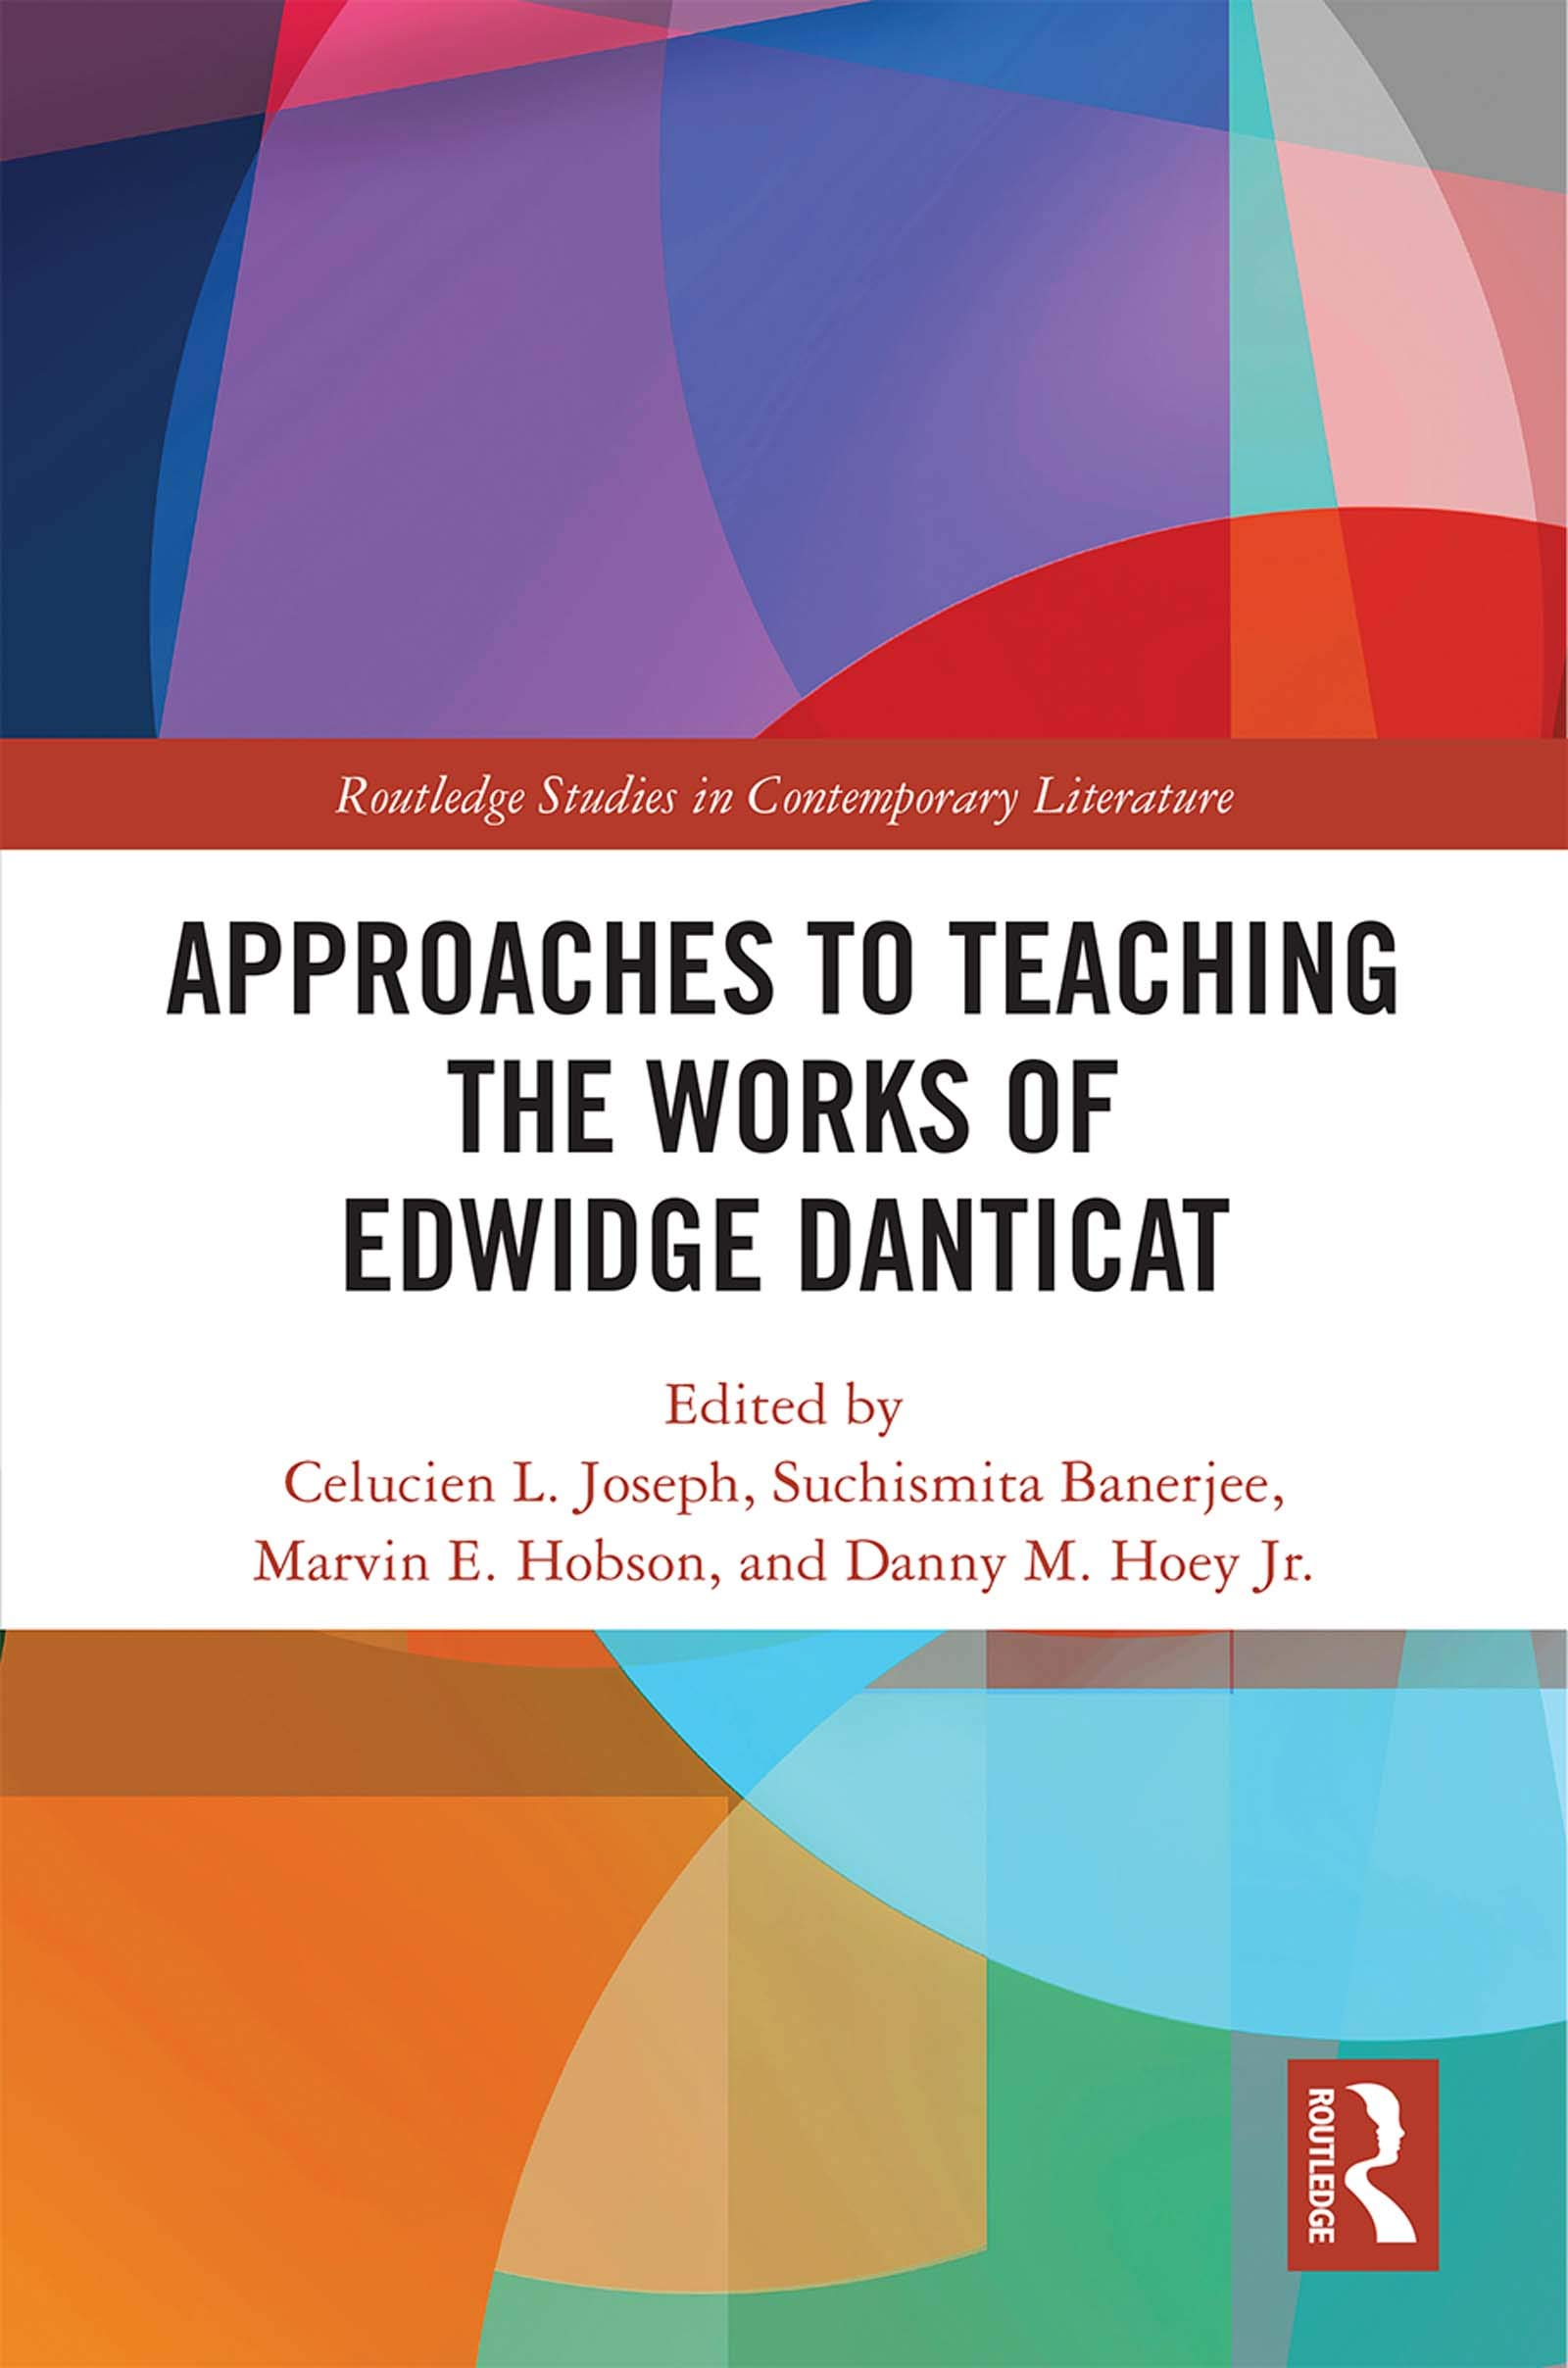 Approaches to Teaching the Works of Edwidge Danticat (Routledge Studies in Contemporary Literature) (English Edition)